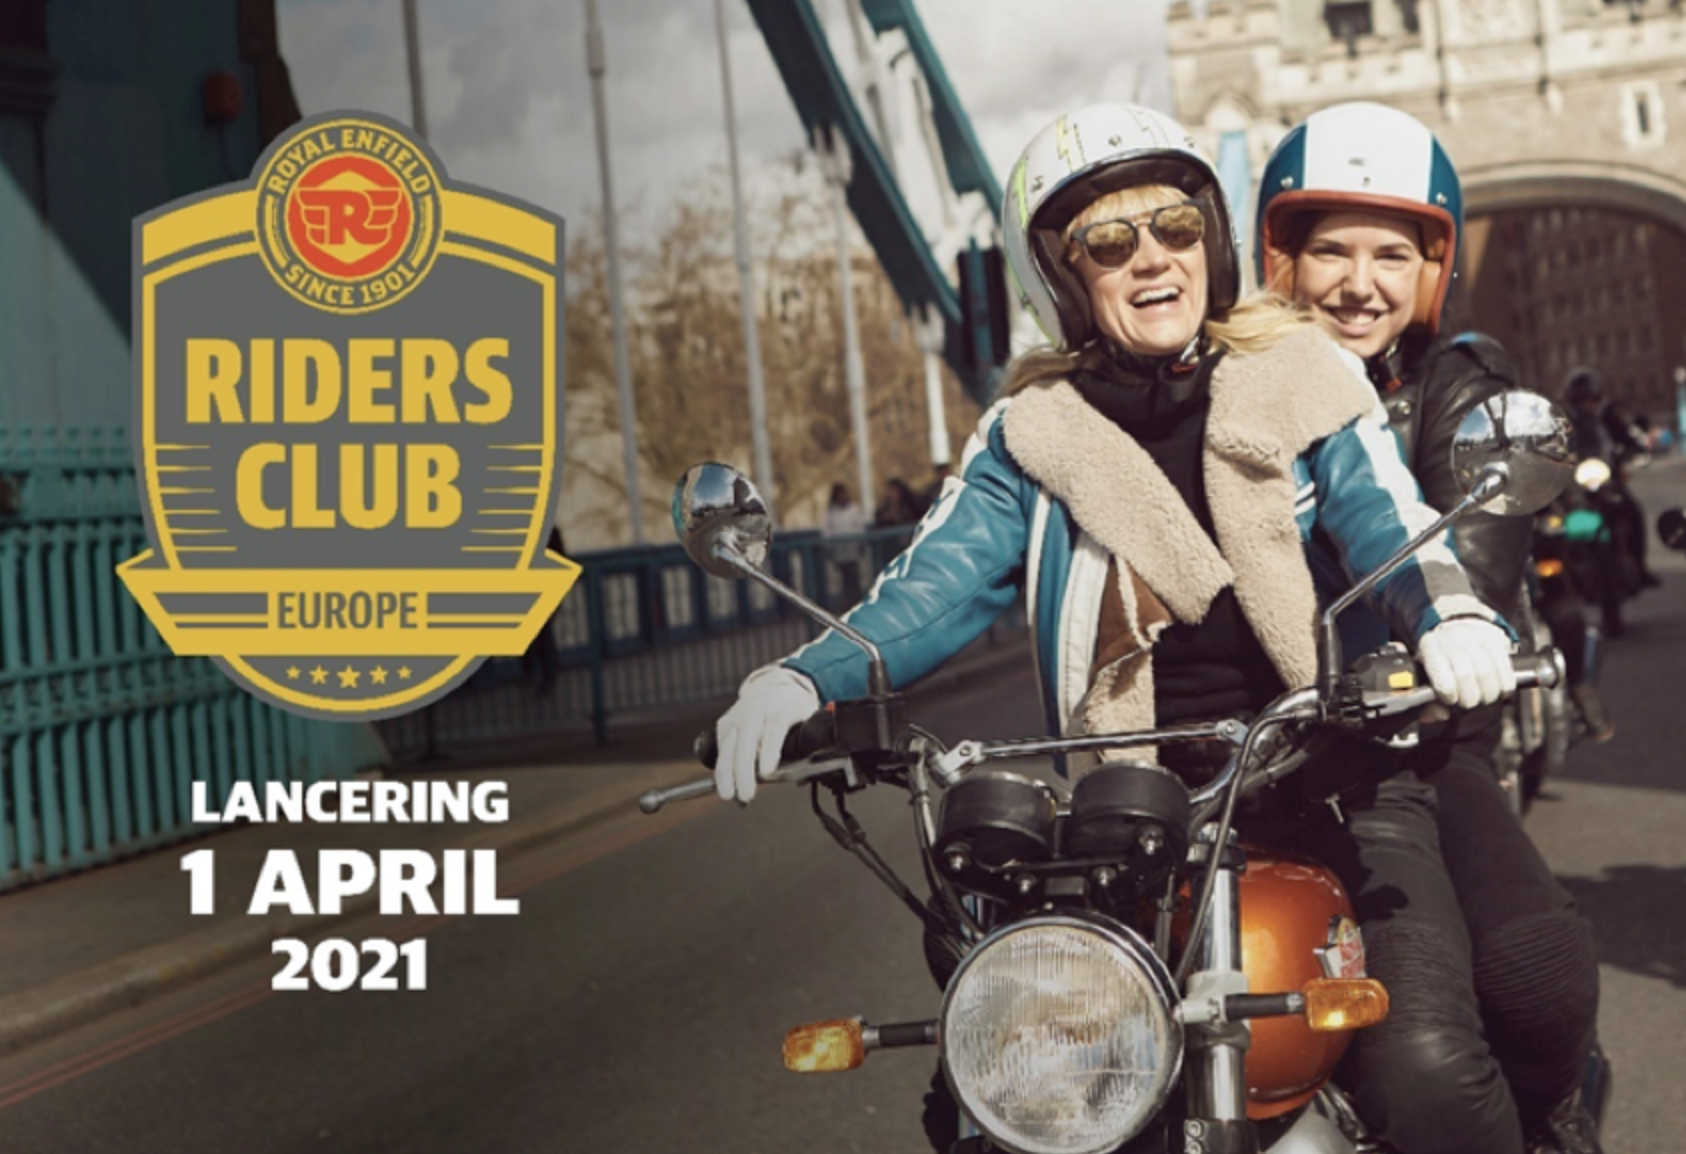 Royal Enfield lanceert The Riders Club of Europe